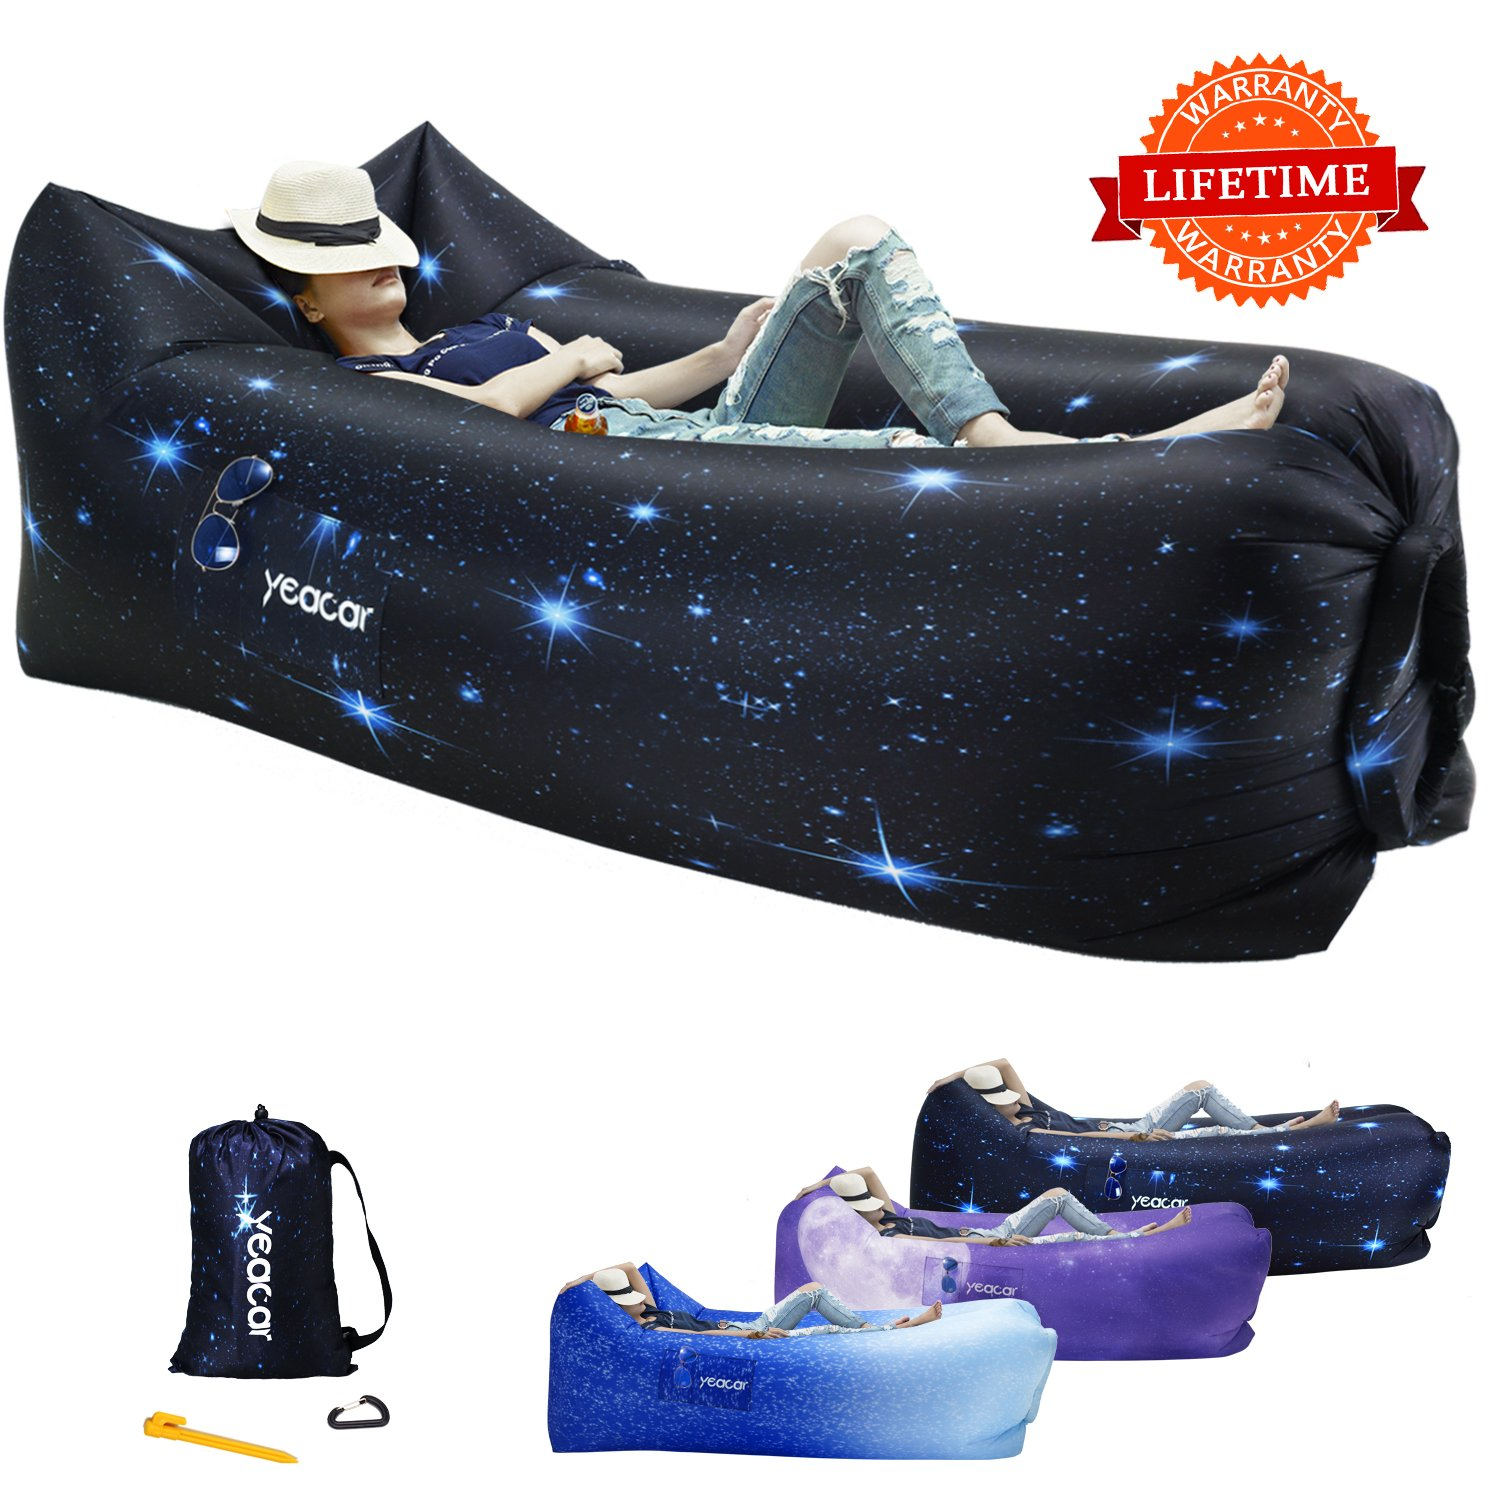 yeacar Inflatable Lounger Airインフレータブルソファソファ、ポータブル防水屋内または屋外のキャンプ公園ハイキング旅行ピクニックプールandビーチパーティー音楽祭 B078V5JHST  Cosmos